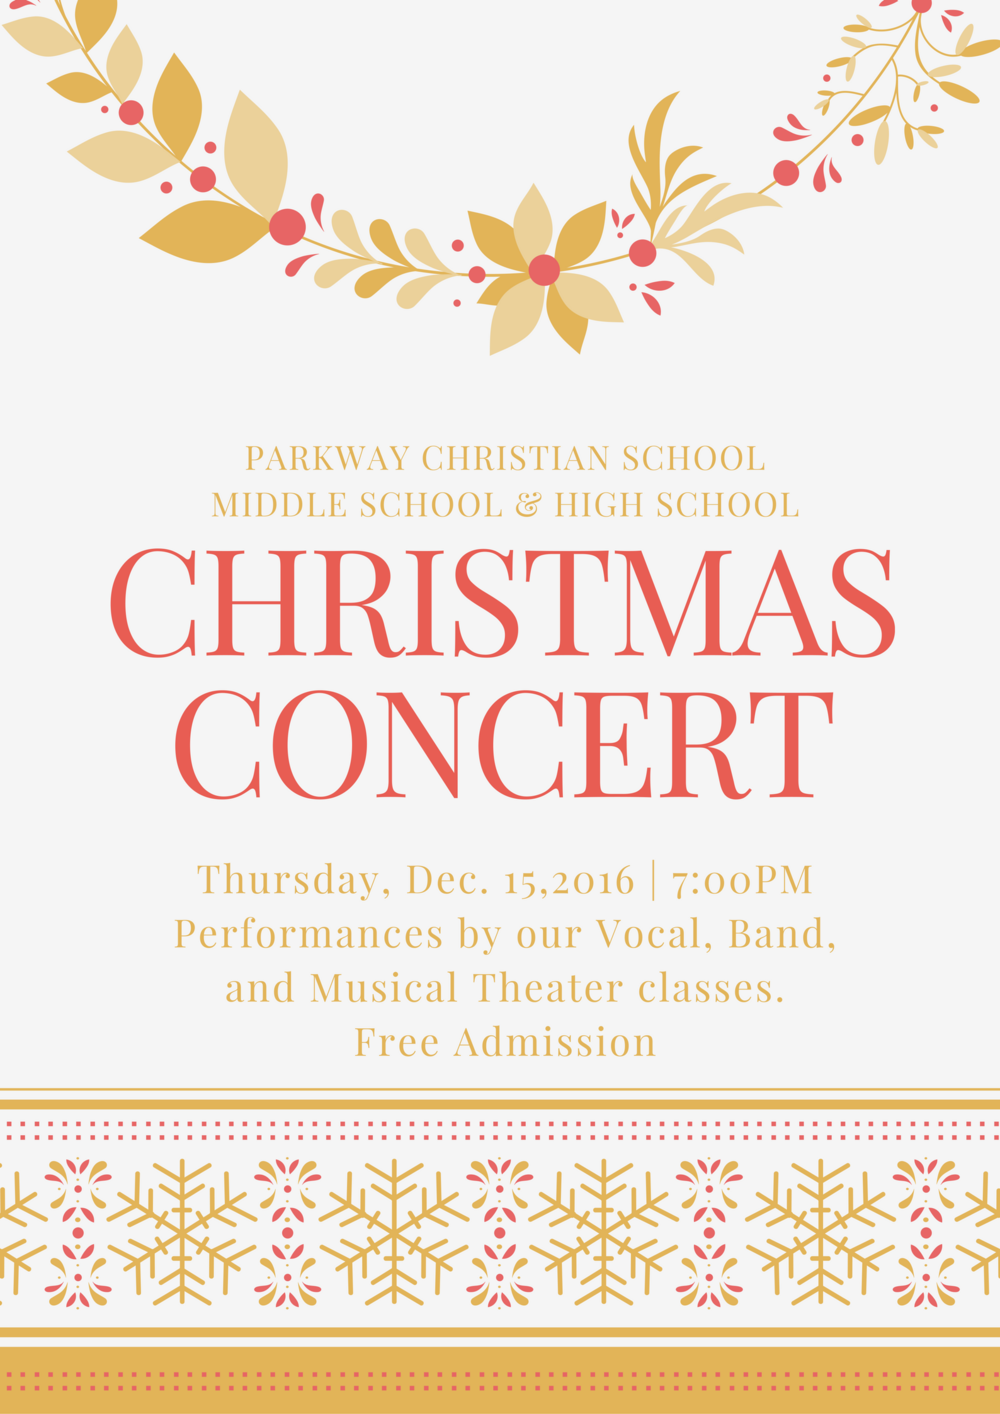 MS/HS Christmas Program — Parkway Christian School